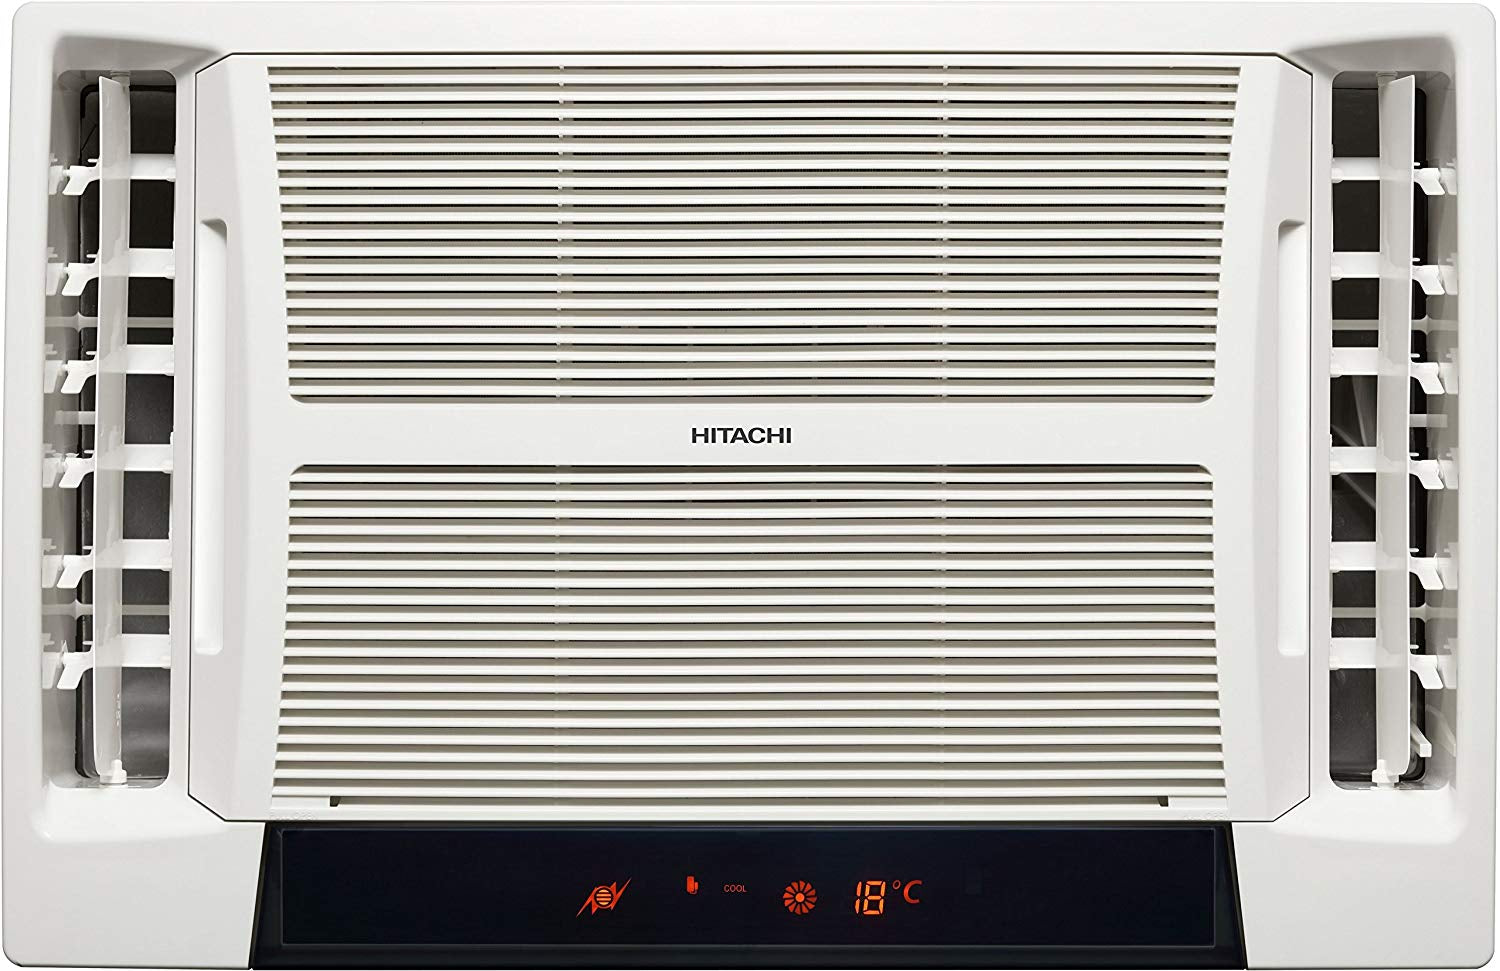 Hitachi 1.5 Ton 5 Star Window AC (RAT518HUD Summer TM, White) get best offers deals free and coupons online at buythevalue.in